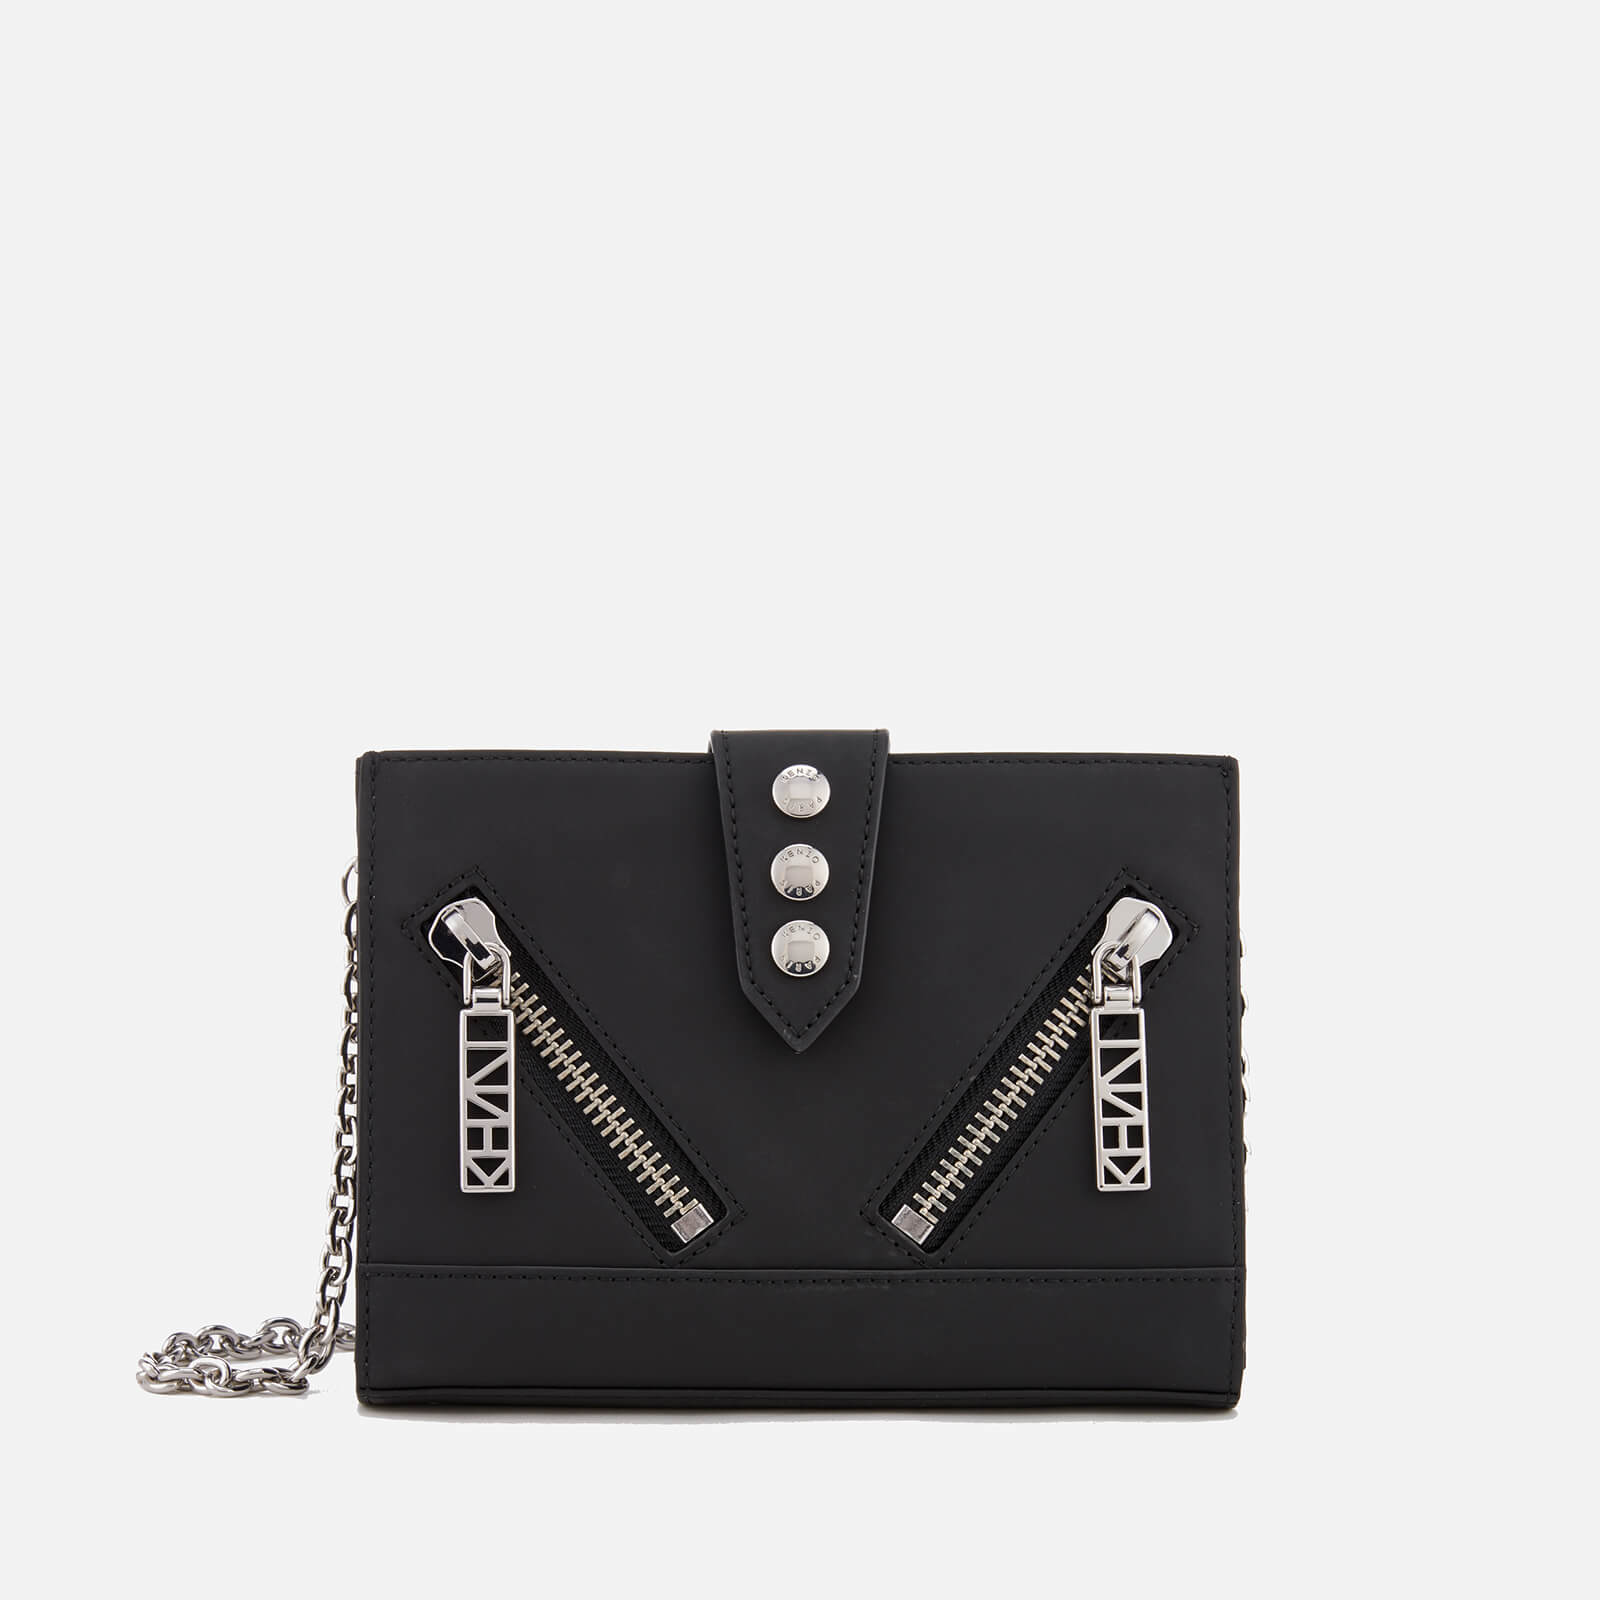 18b4b90b91 KENZO Women's Kalifornia Wallet on a Chain Crossbody Bag - Black